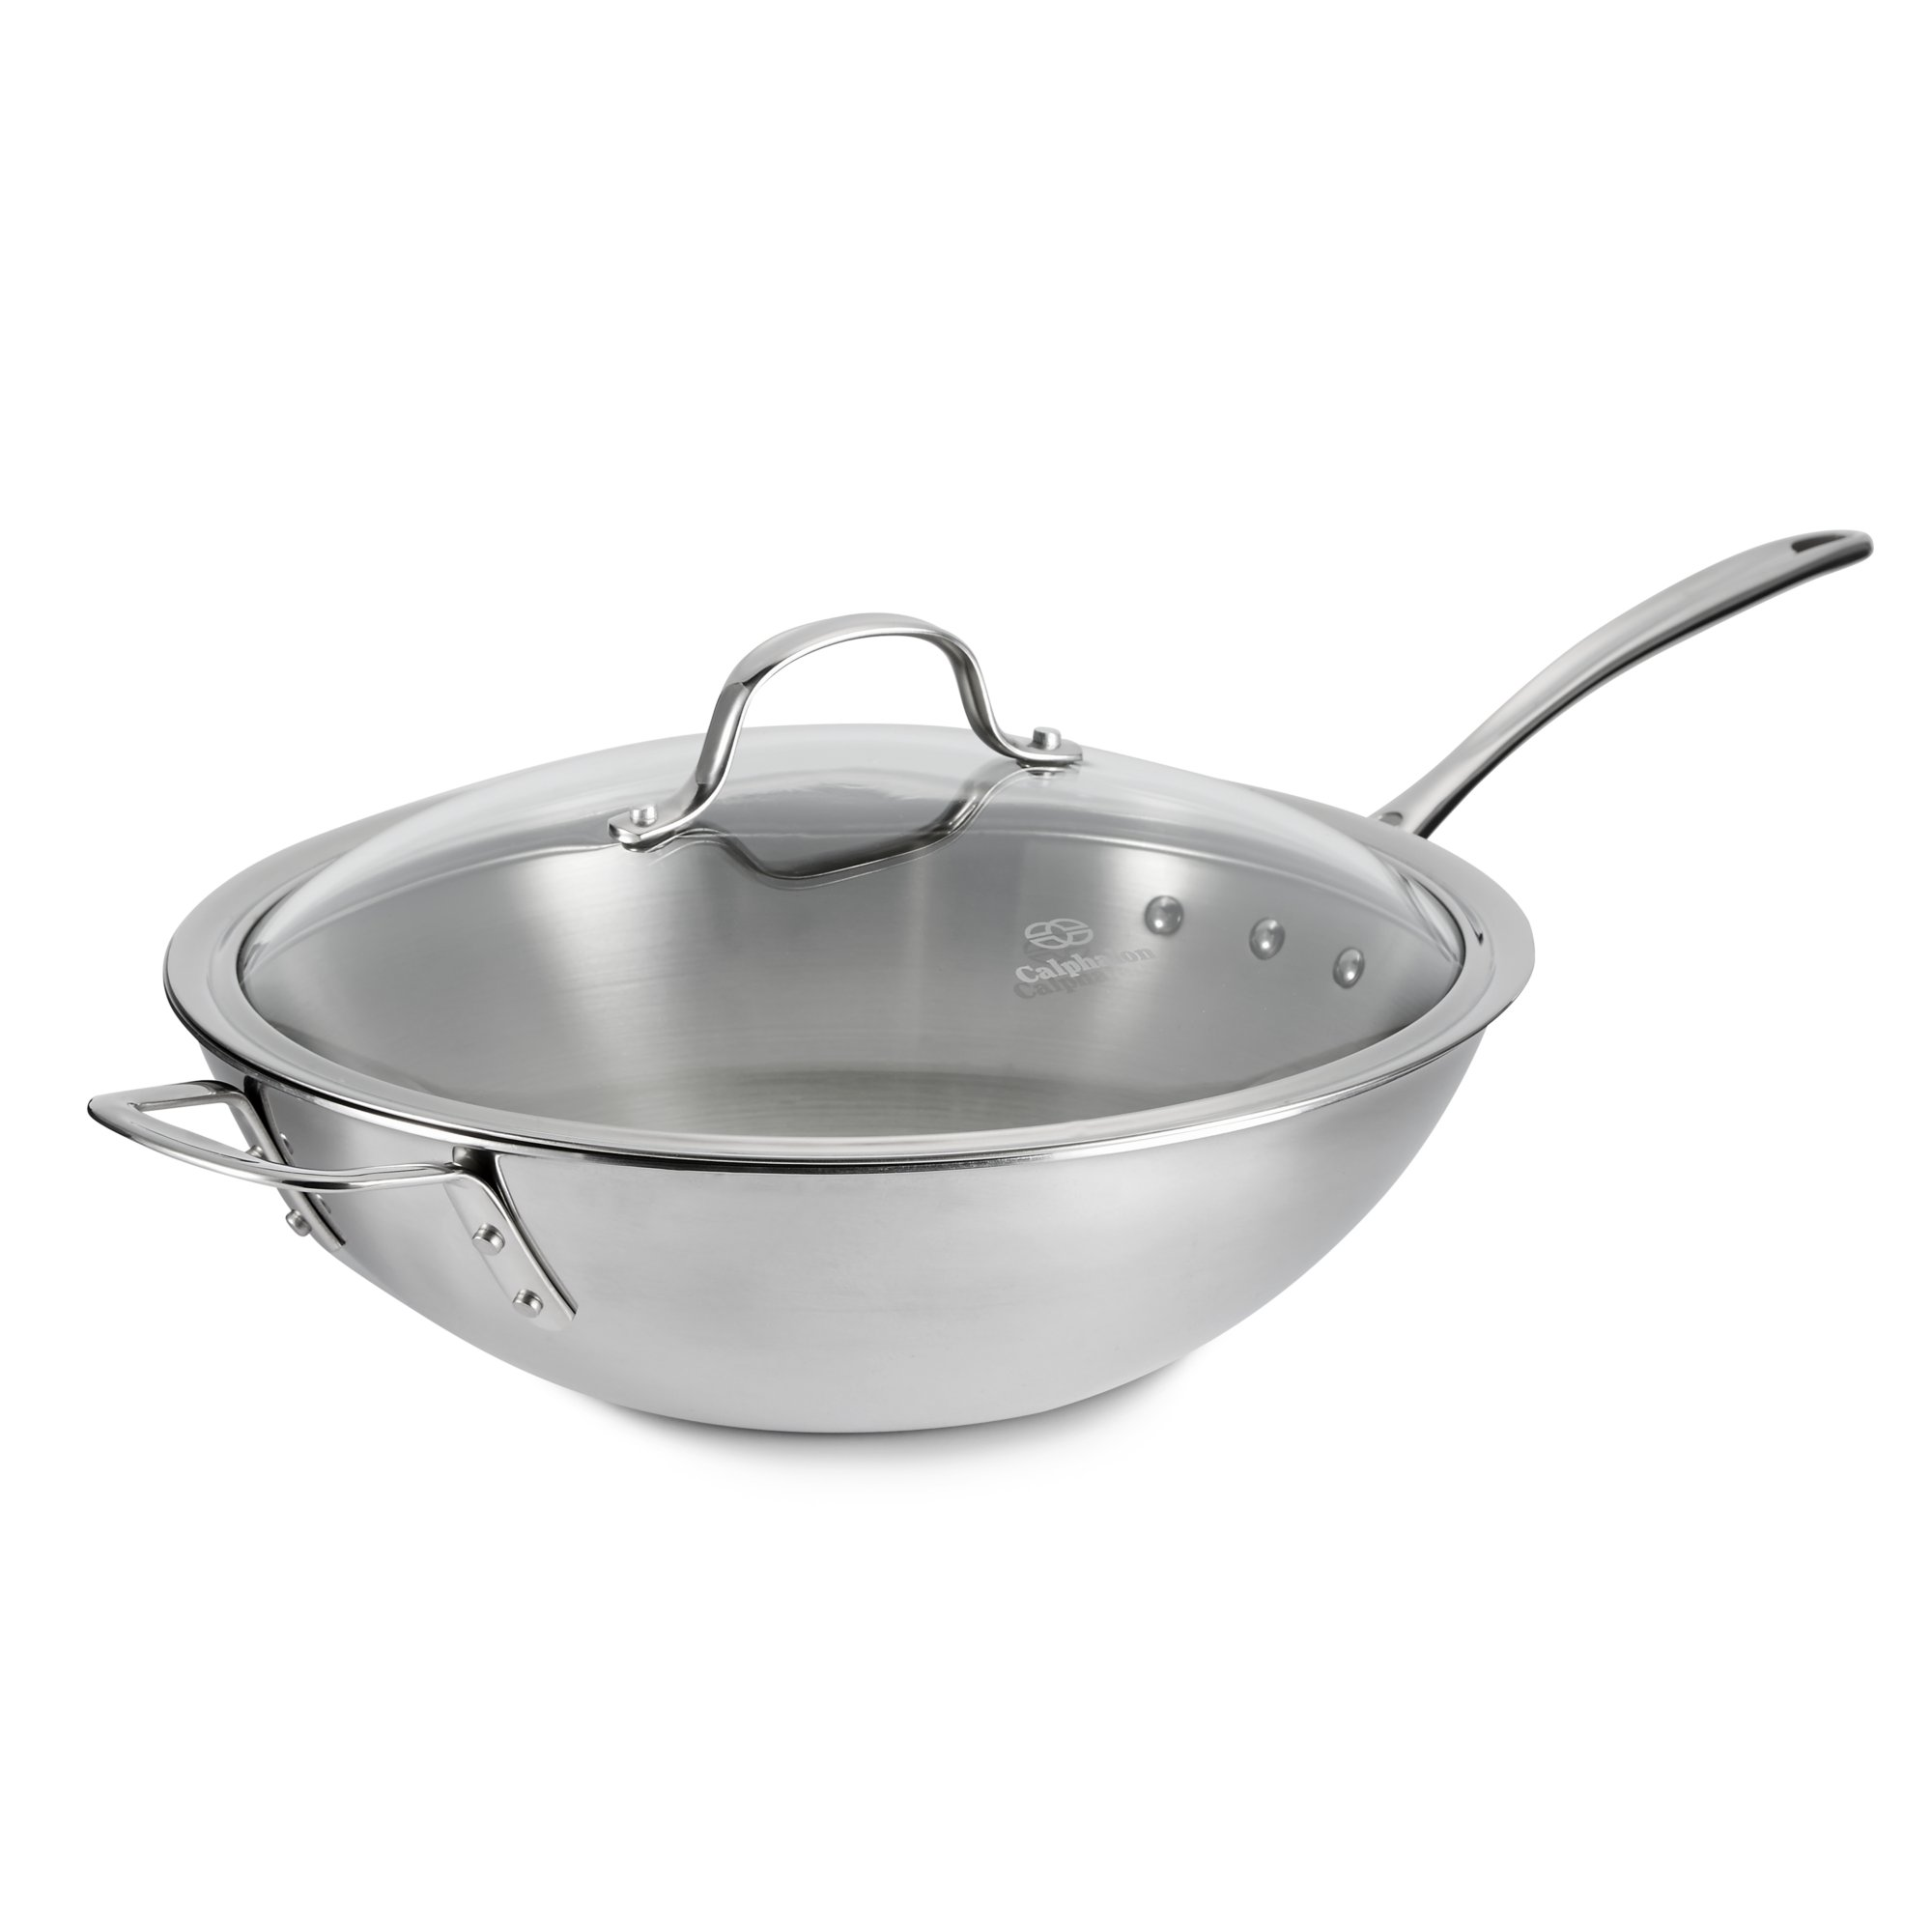 calphalon triply stainless steel 12in stir fry with cover